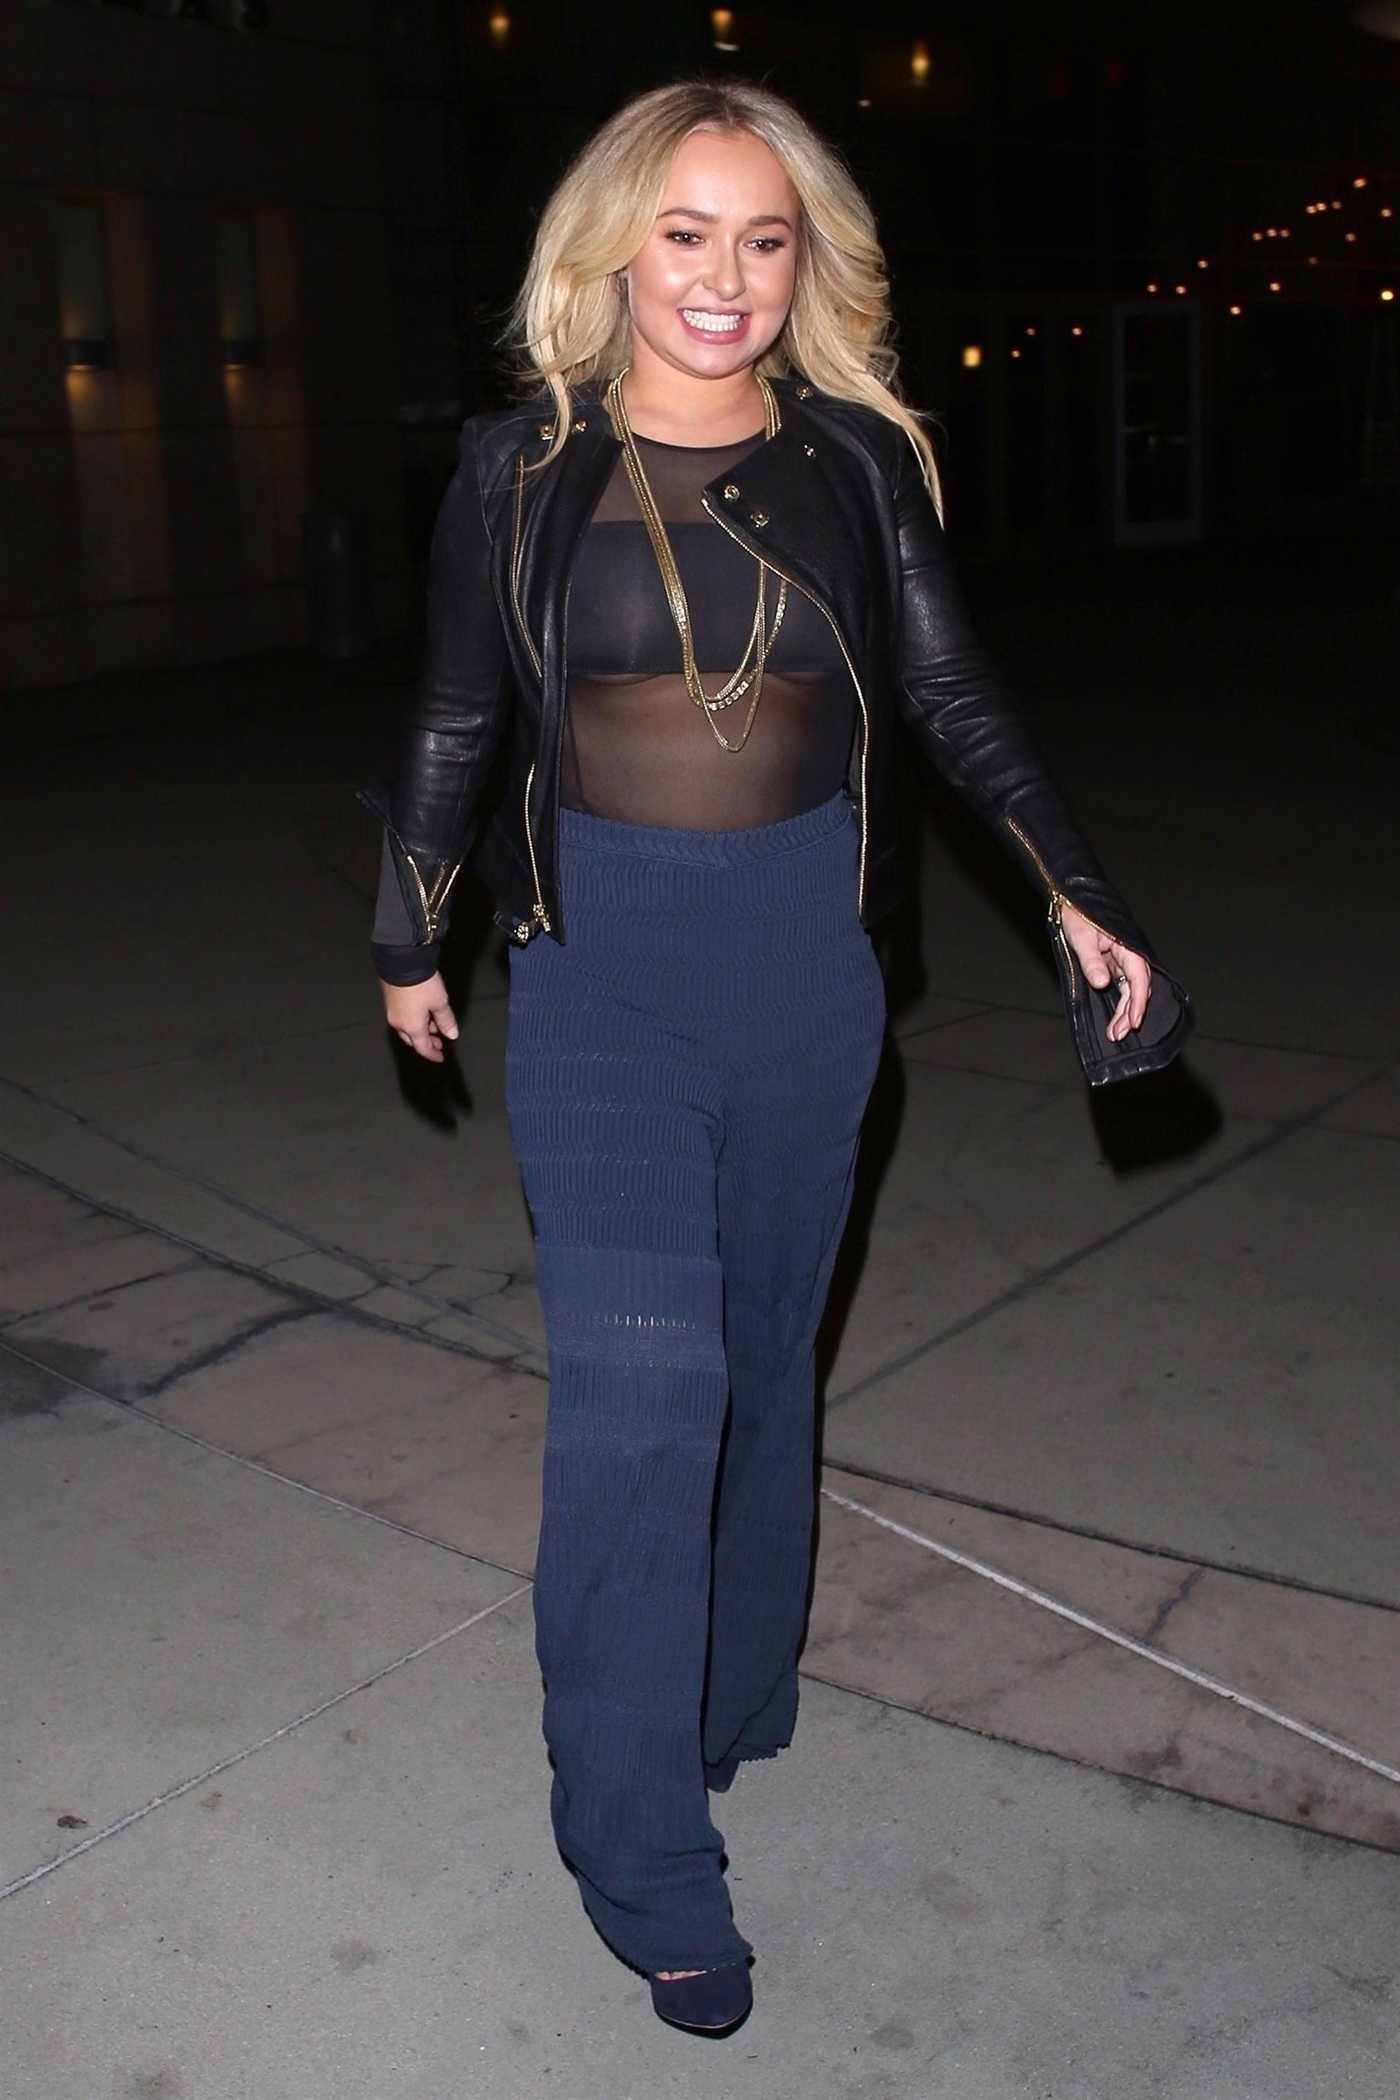 Hayden Panettiere Arrives at ArcLight Theatre Out with Brian Hickerson in Hollywood 01/31/2019